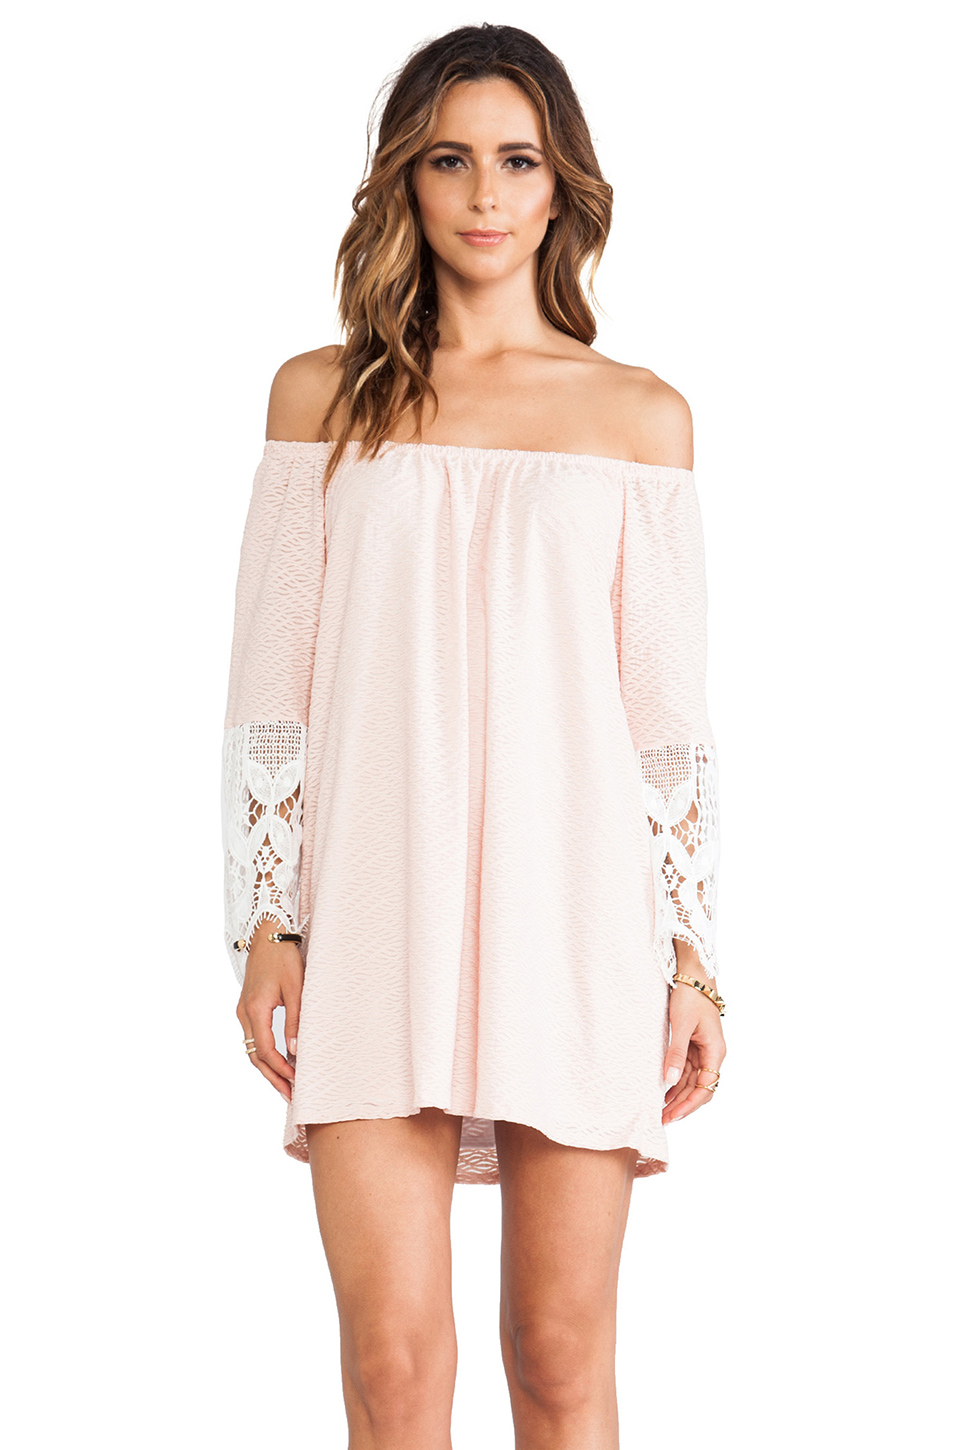 VAVA by Joy Han Caitlyn Off Shoulder Dress in Peach from REVOLVEclothing.com